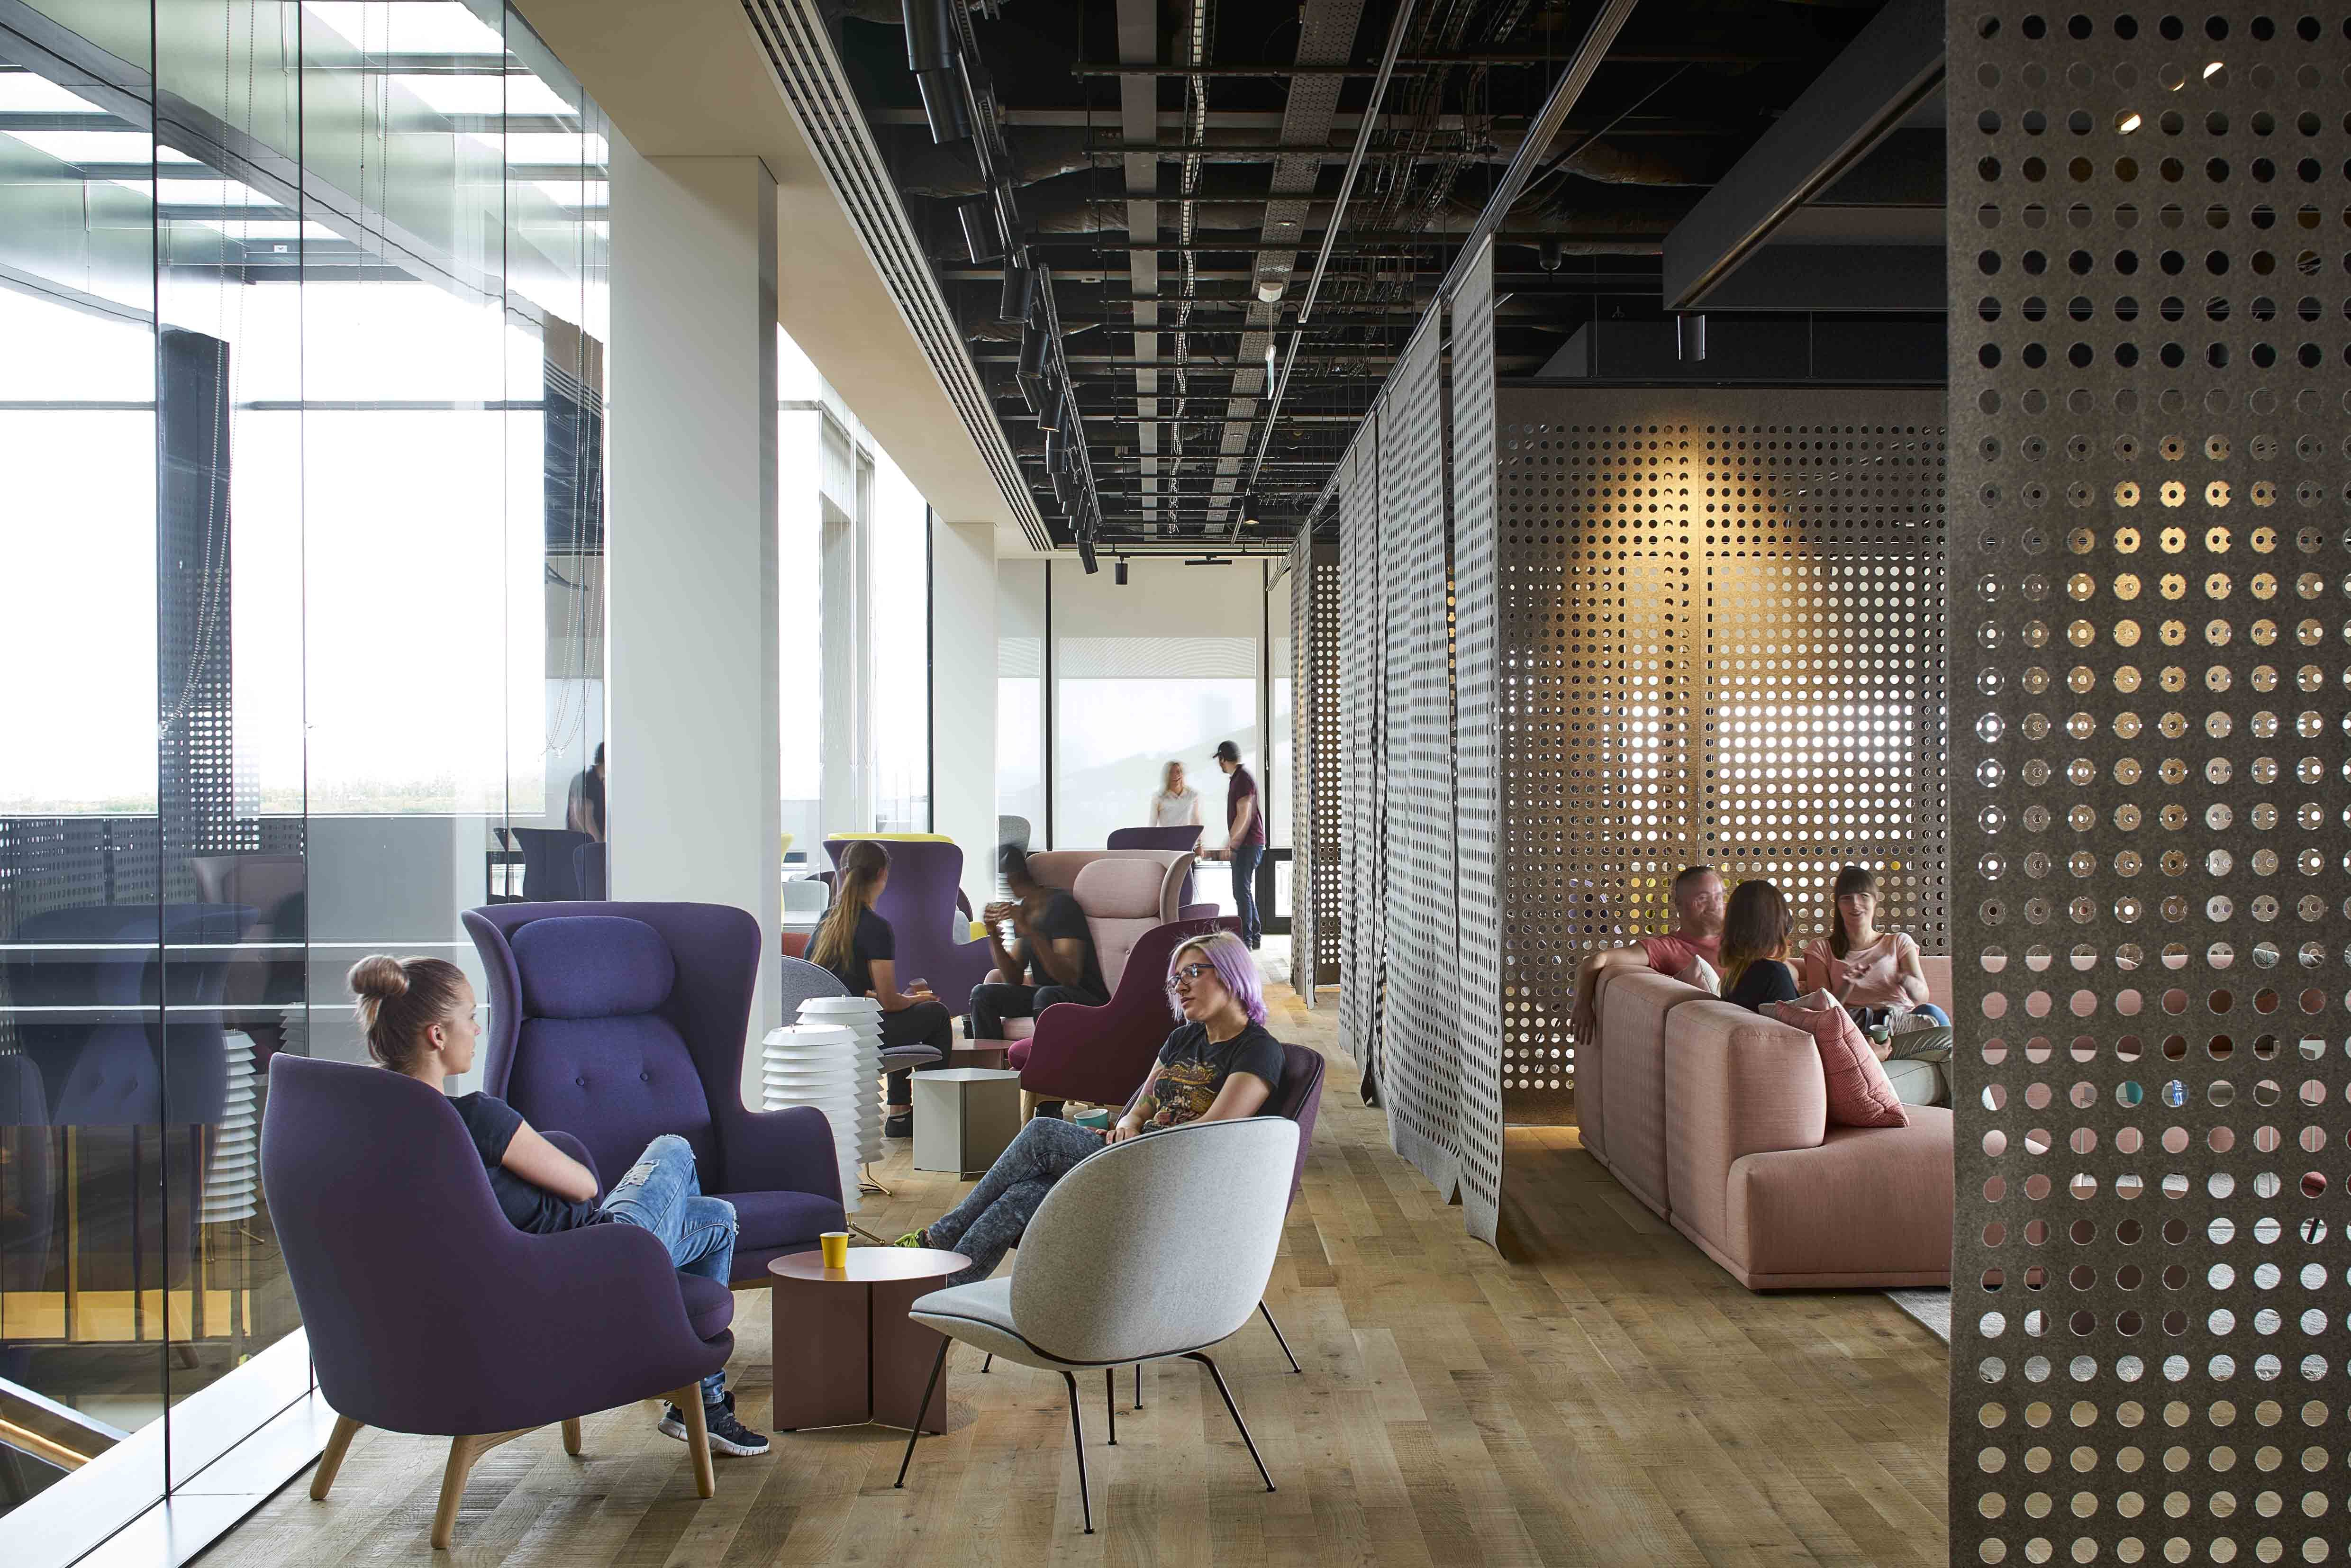 google office spaces. Google\u0027s King\u0027s Cross Office: Modular Meeting Rooms And Bowie-inspired Breakout Spaces - Design Google Office